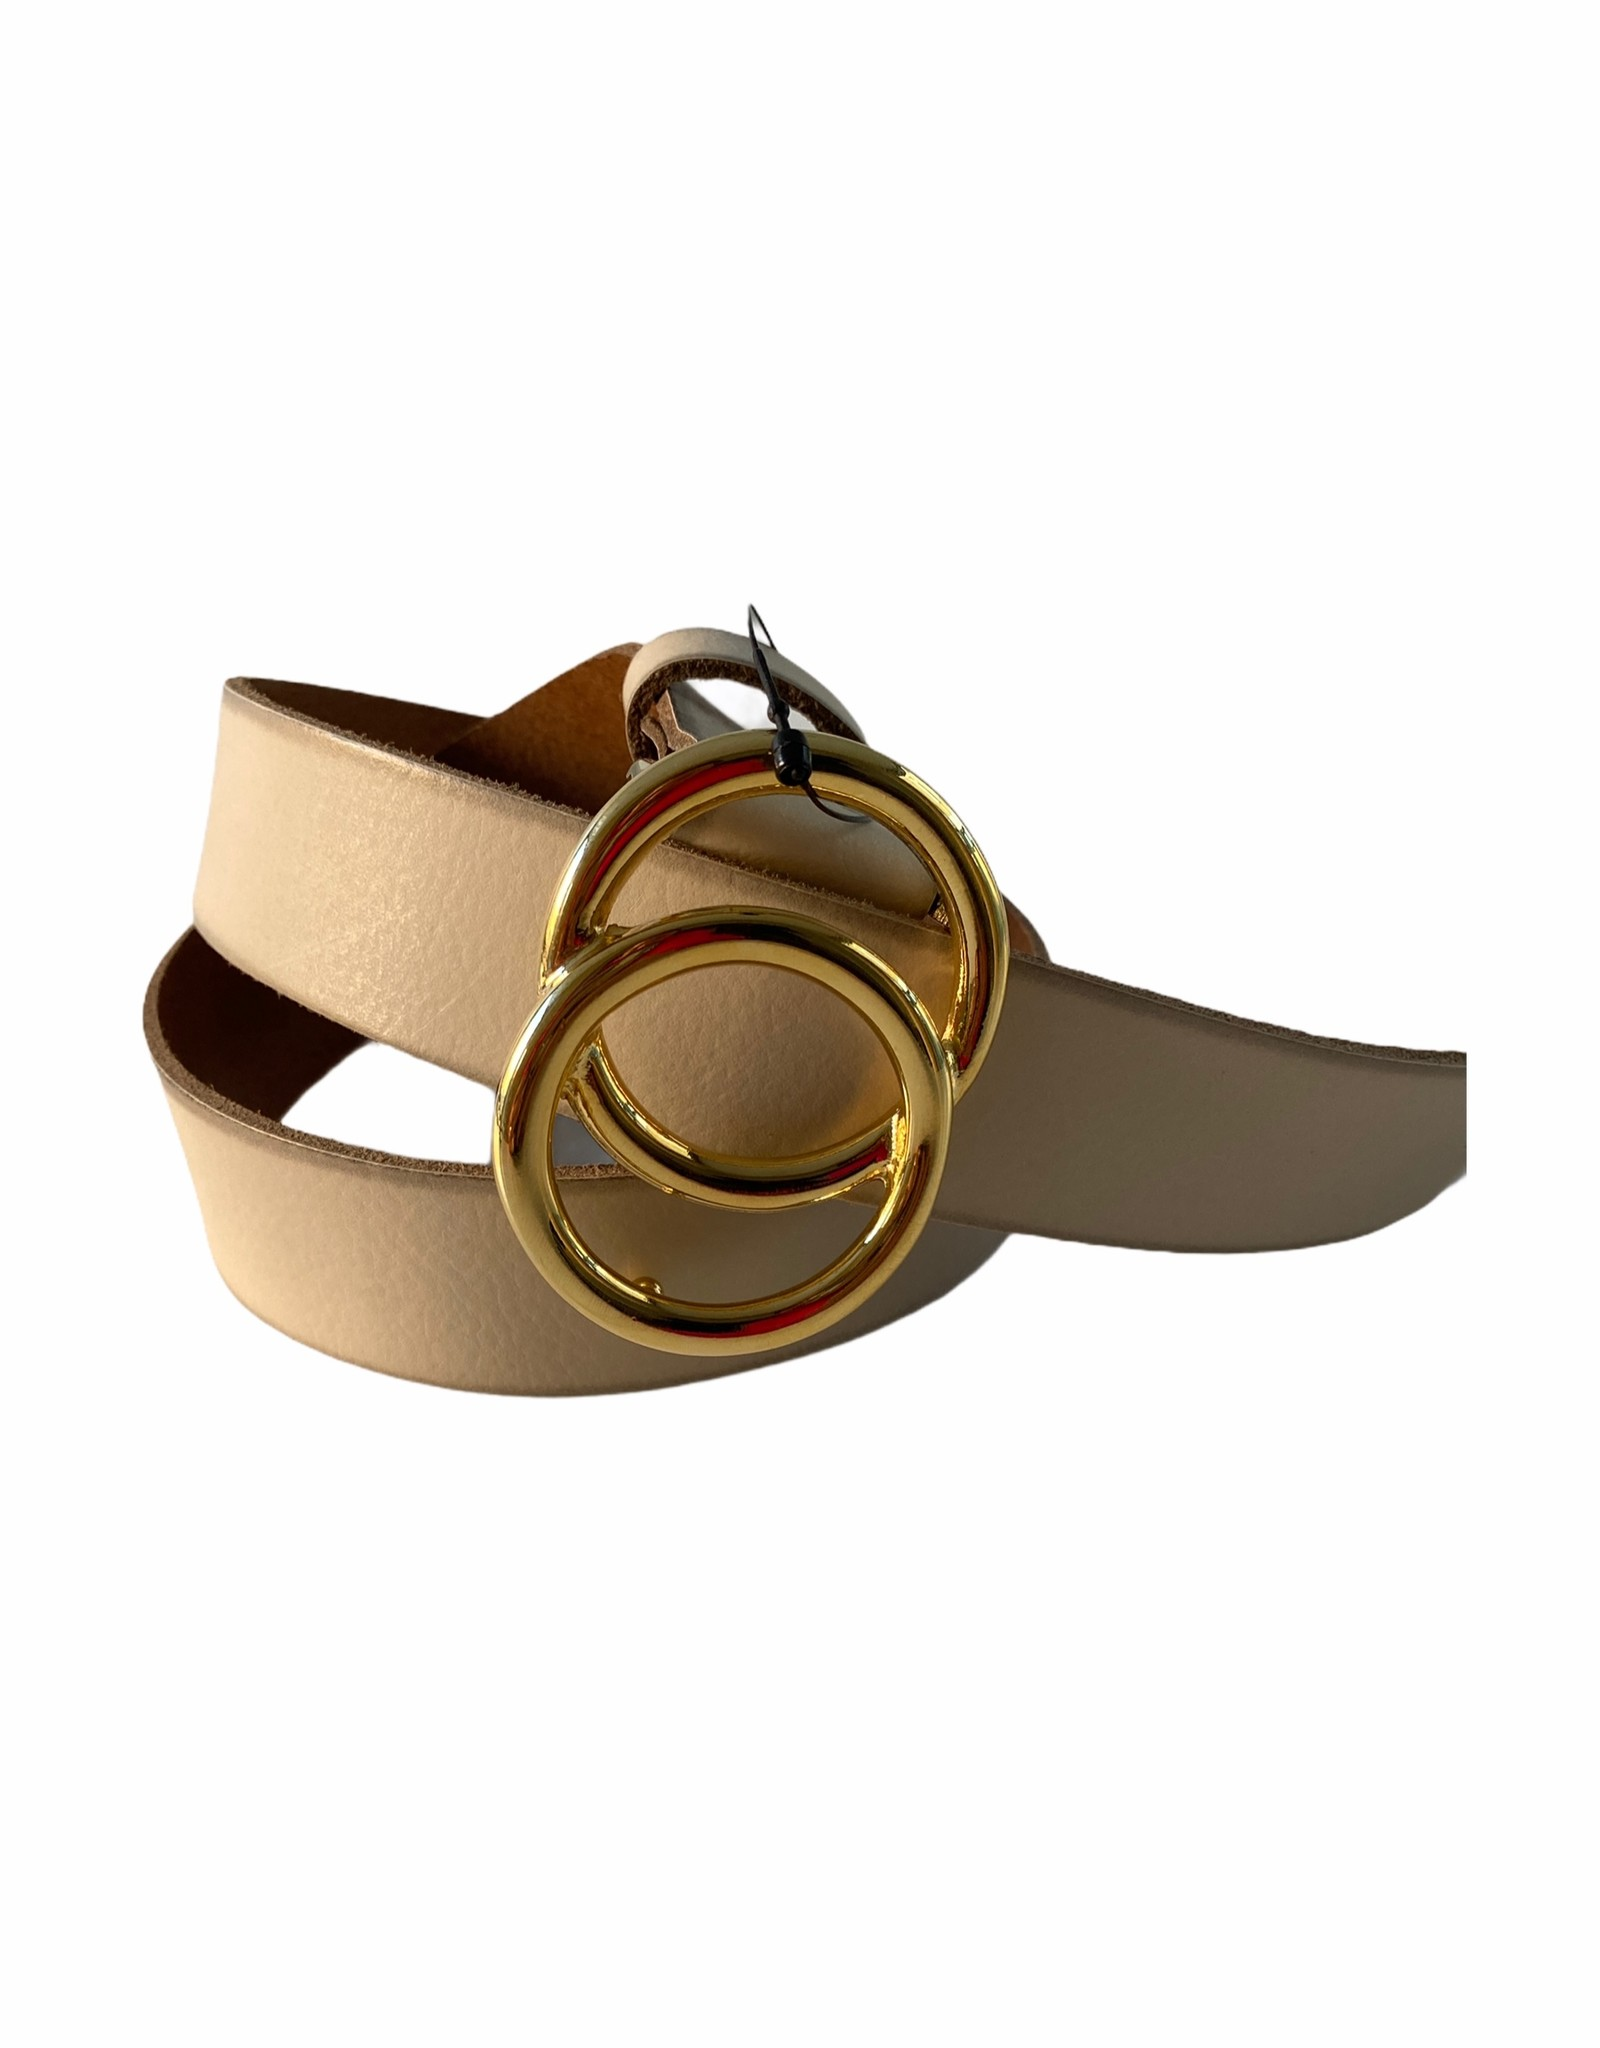 Leather belt with golden buckle